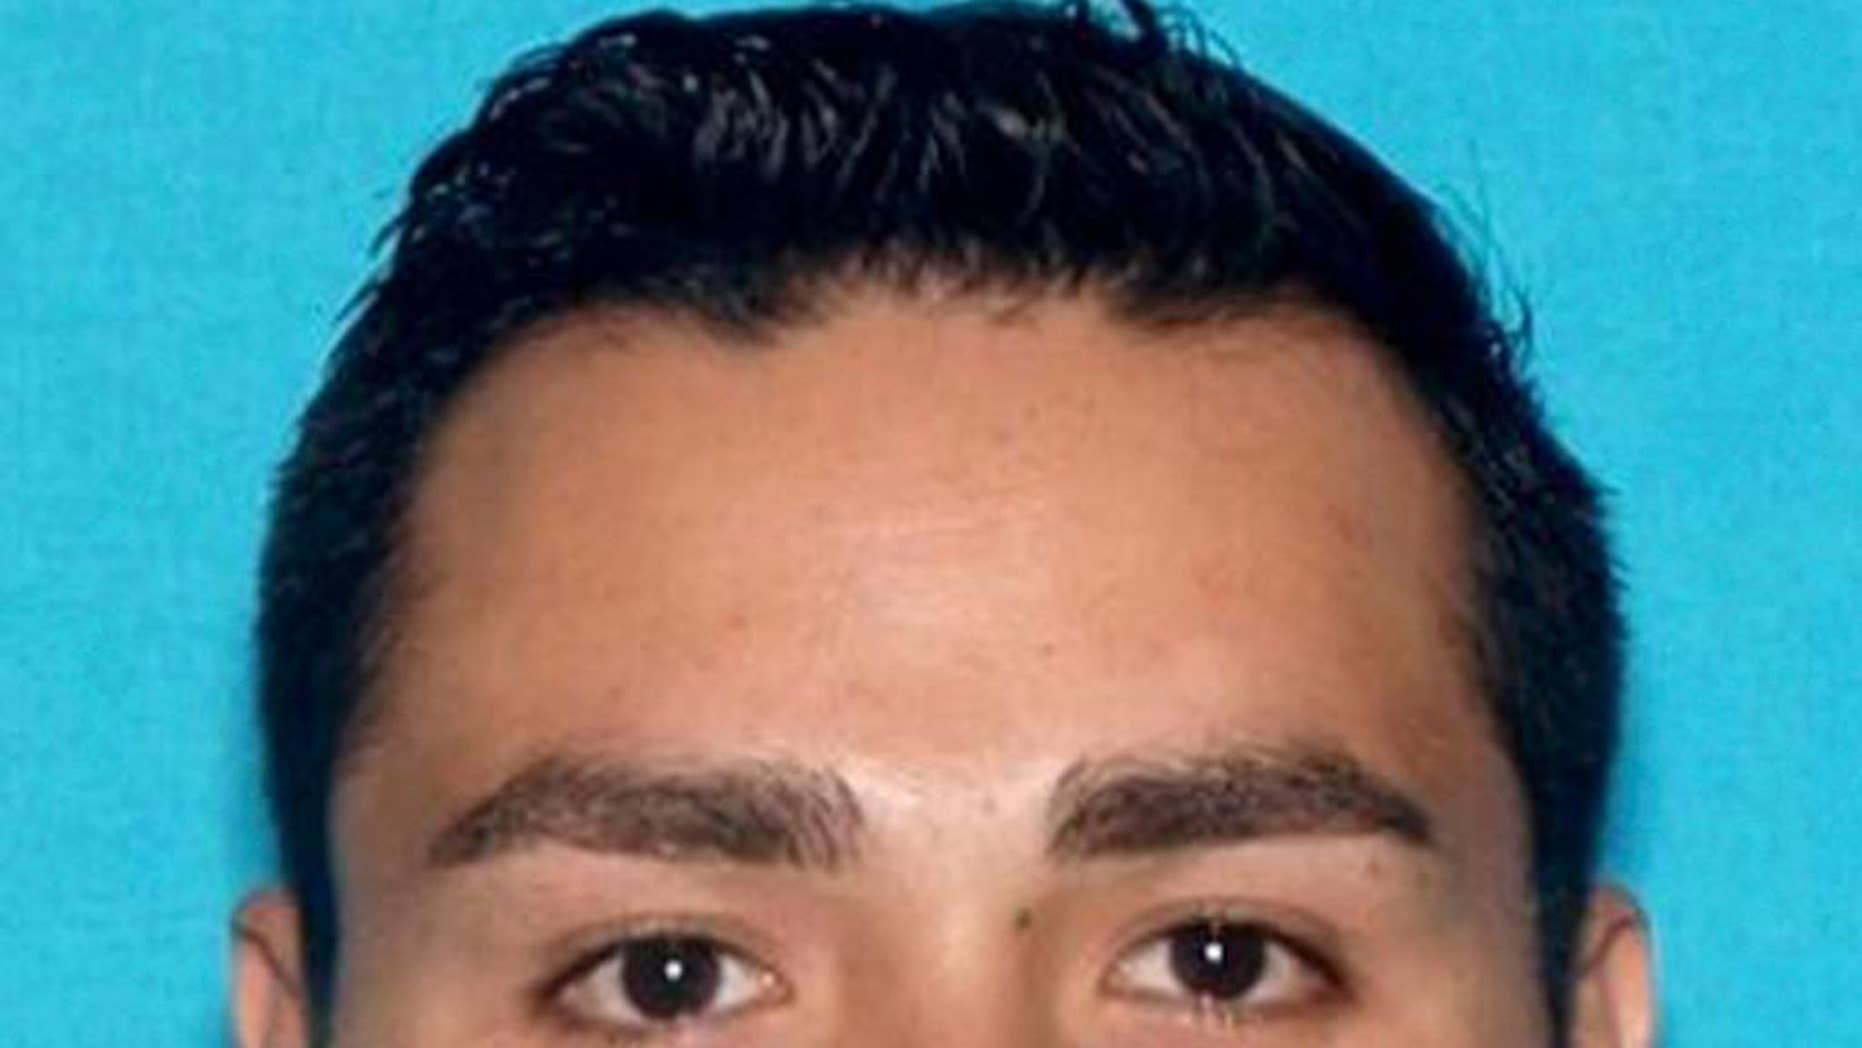 FILE - This undated file photo provided by the Pomona, Calif., Police Department shows Henry Solis. The rookie Los Angeles police officer charged with murder in the killing of a man during an off-duty fight fled with the help of his father to Texas where the men have family, according to a federal arrest warrant filed Thursday, March 19, 2015. The document says Solis called his father, Victor Solis of Lancaster, for help after a brawl outside a downtown Pomona bar early Friday in which Salome Rodriguez was shot multiple times and killed. (AP Photo/Pomona Police Department, File)